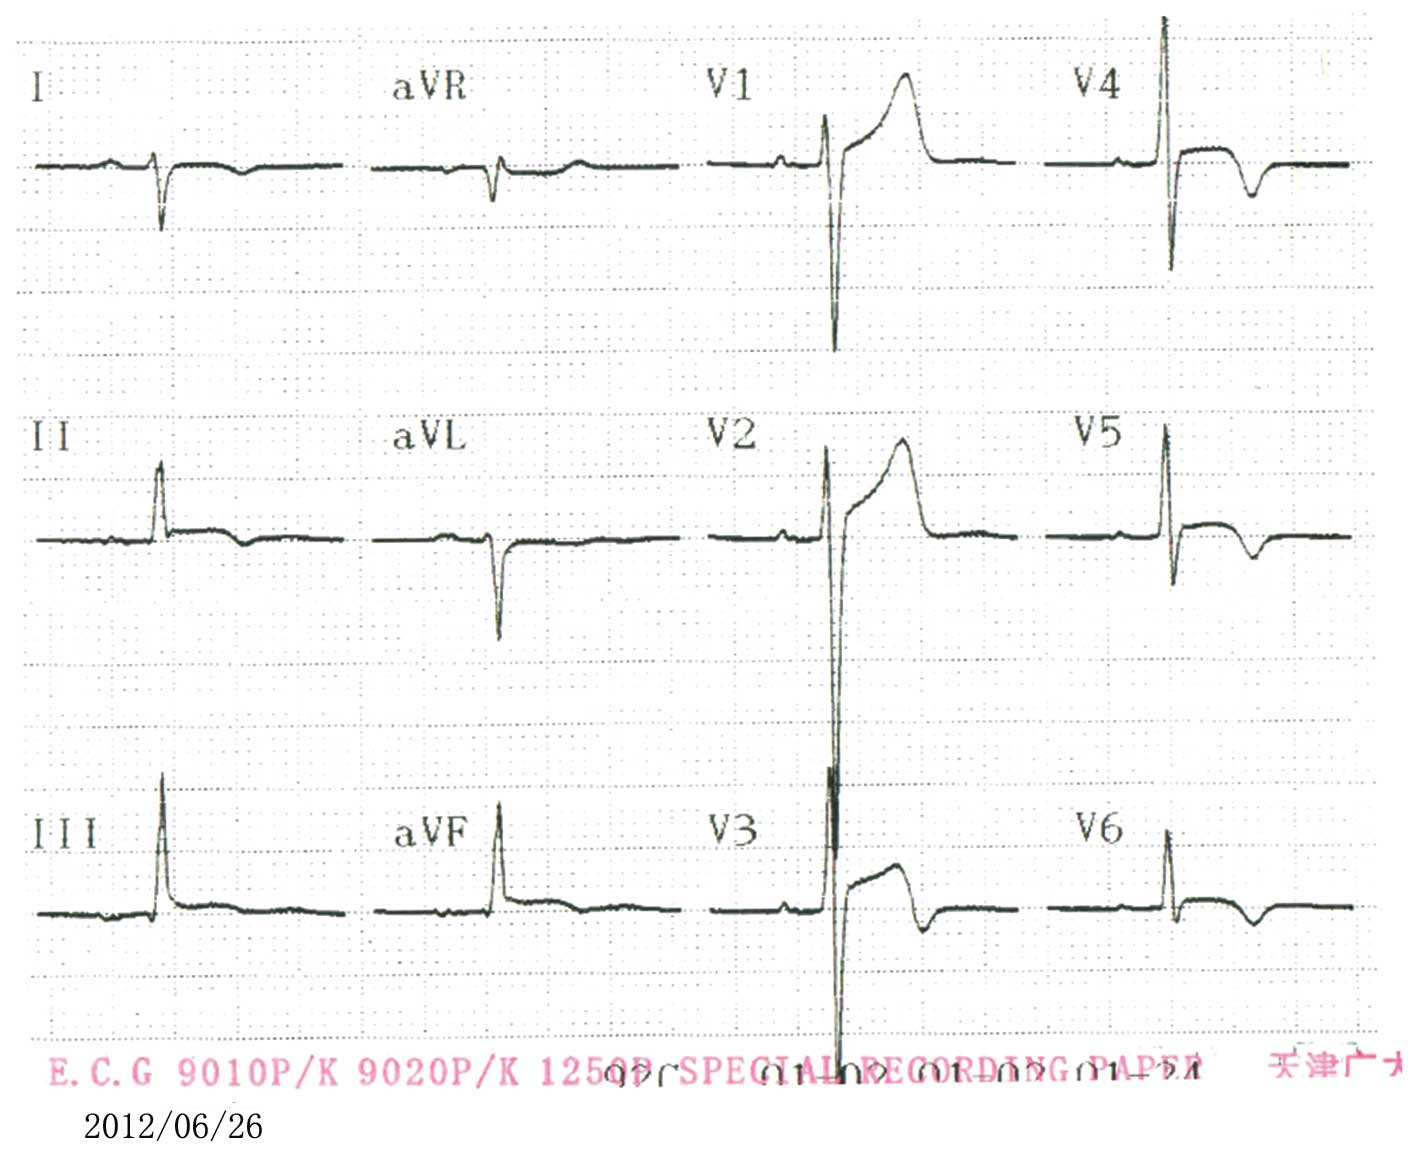 Acute Myocarditis Mimicking St Elevation Myocardial Infarction A Cde Ham Iii Wiring Diagram Review Of The Electrocardiogram On Ninth Day Demonstrated That Elevated Segment In Leads Ii And Avf Had Fallen Back To Baseline Level